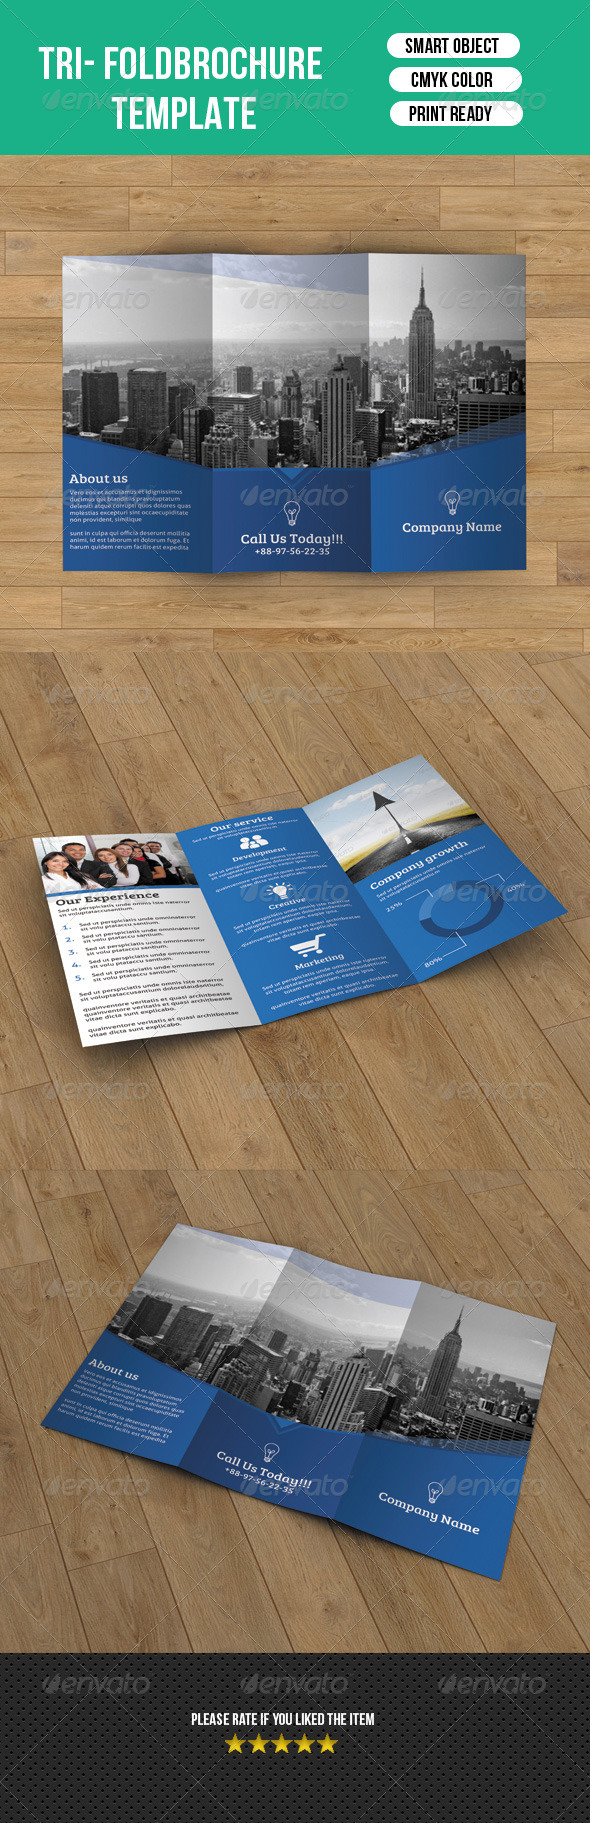 Corporate Trifold Template-V19